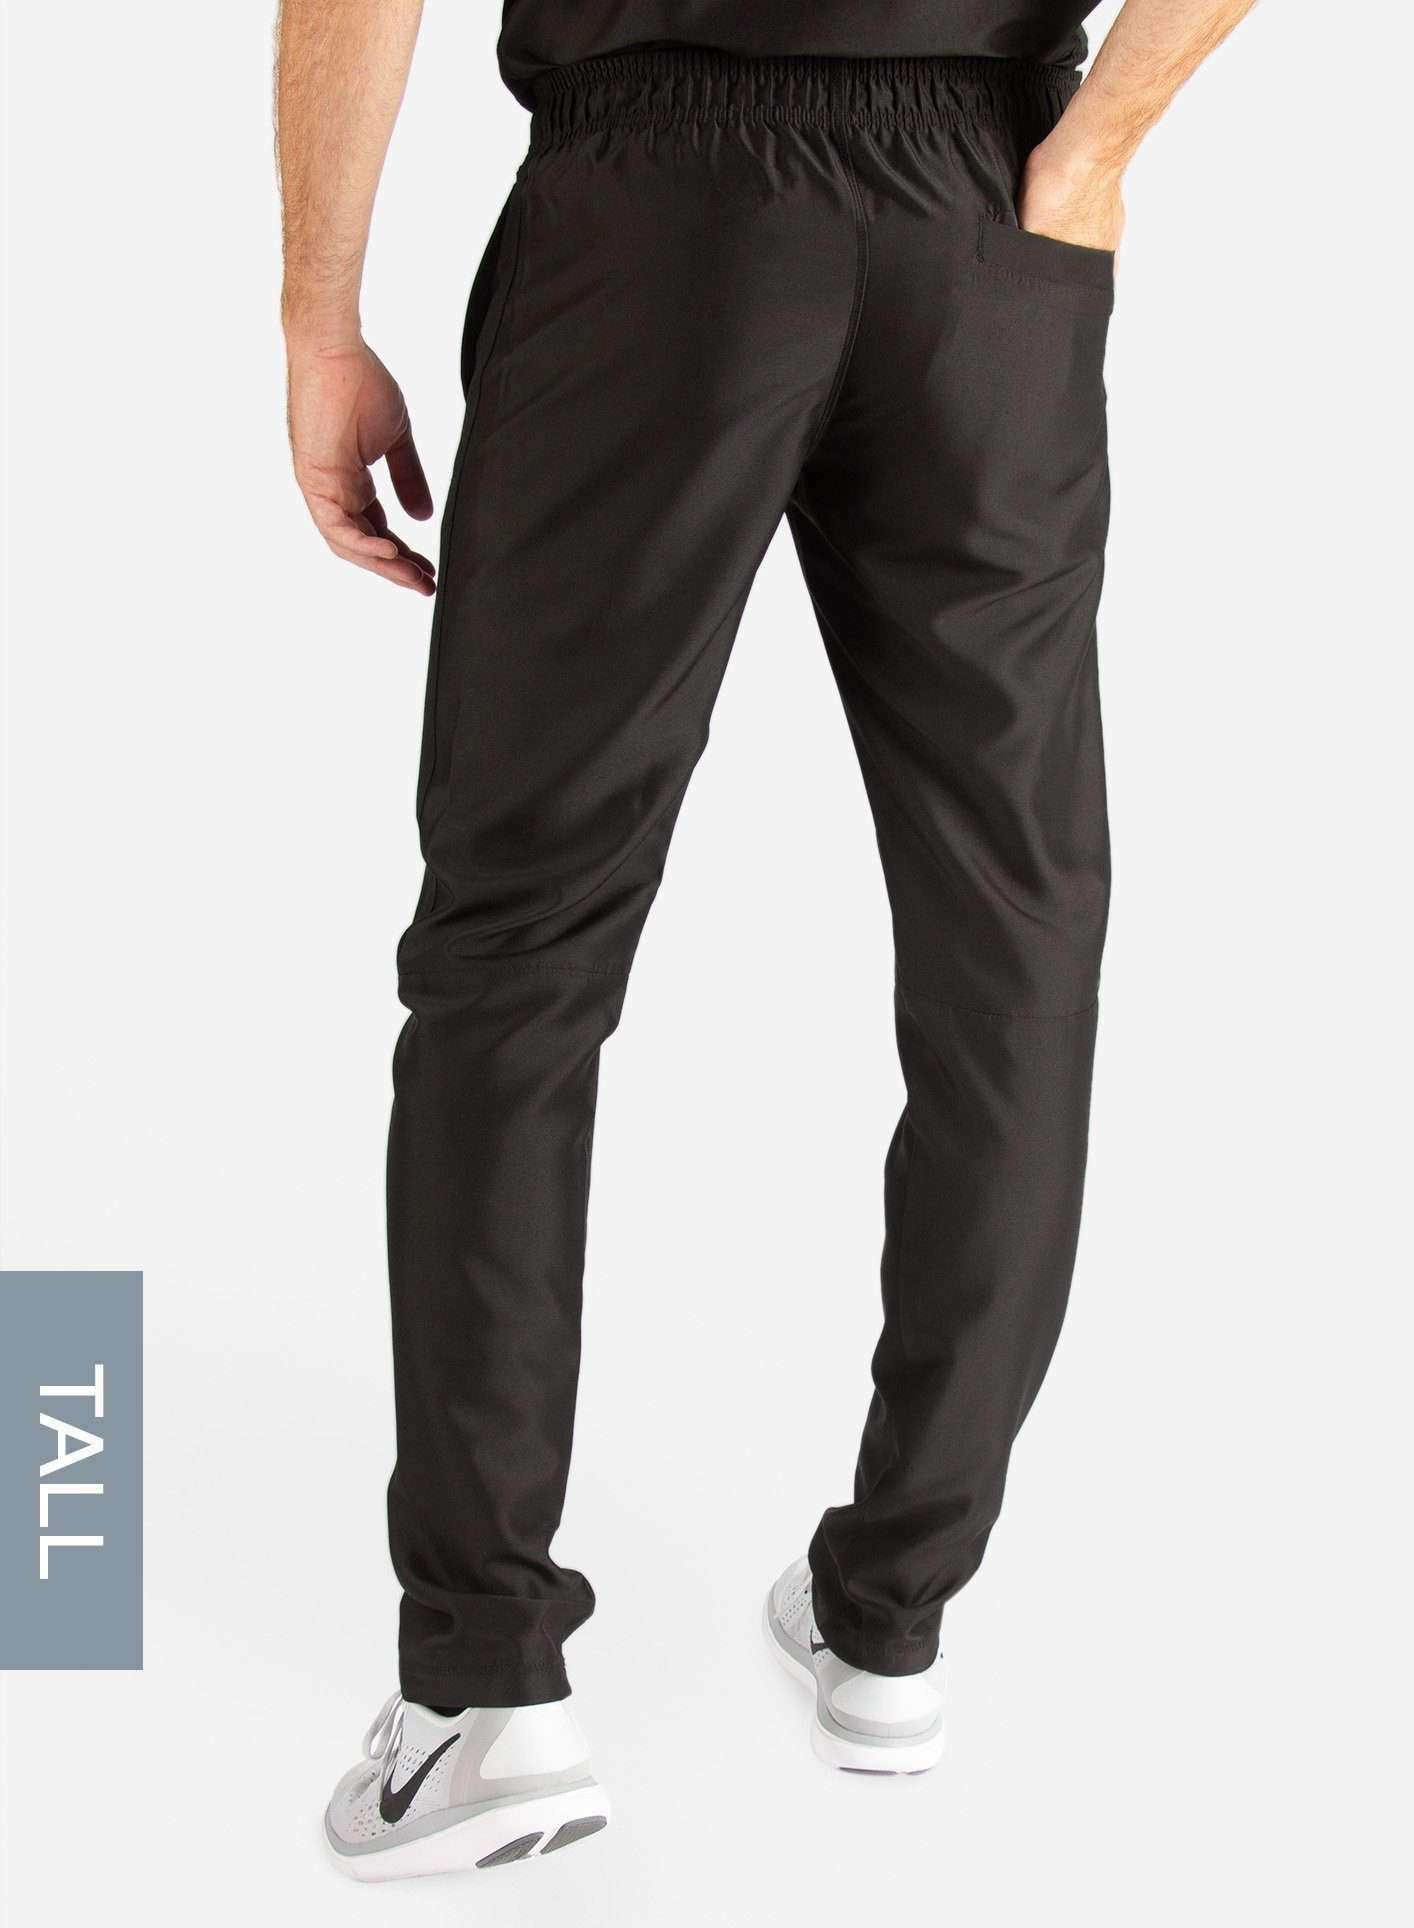 Men's Tall Slim Fit Scrub Pants in Real Black Back View